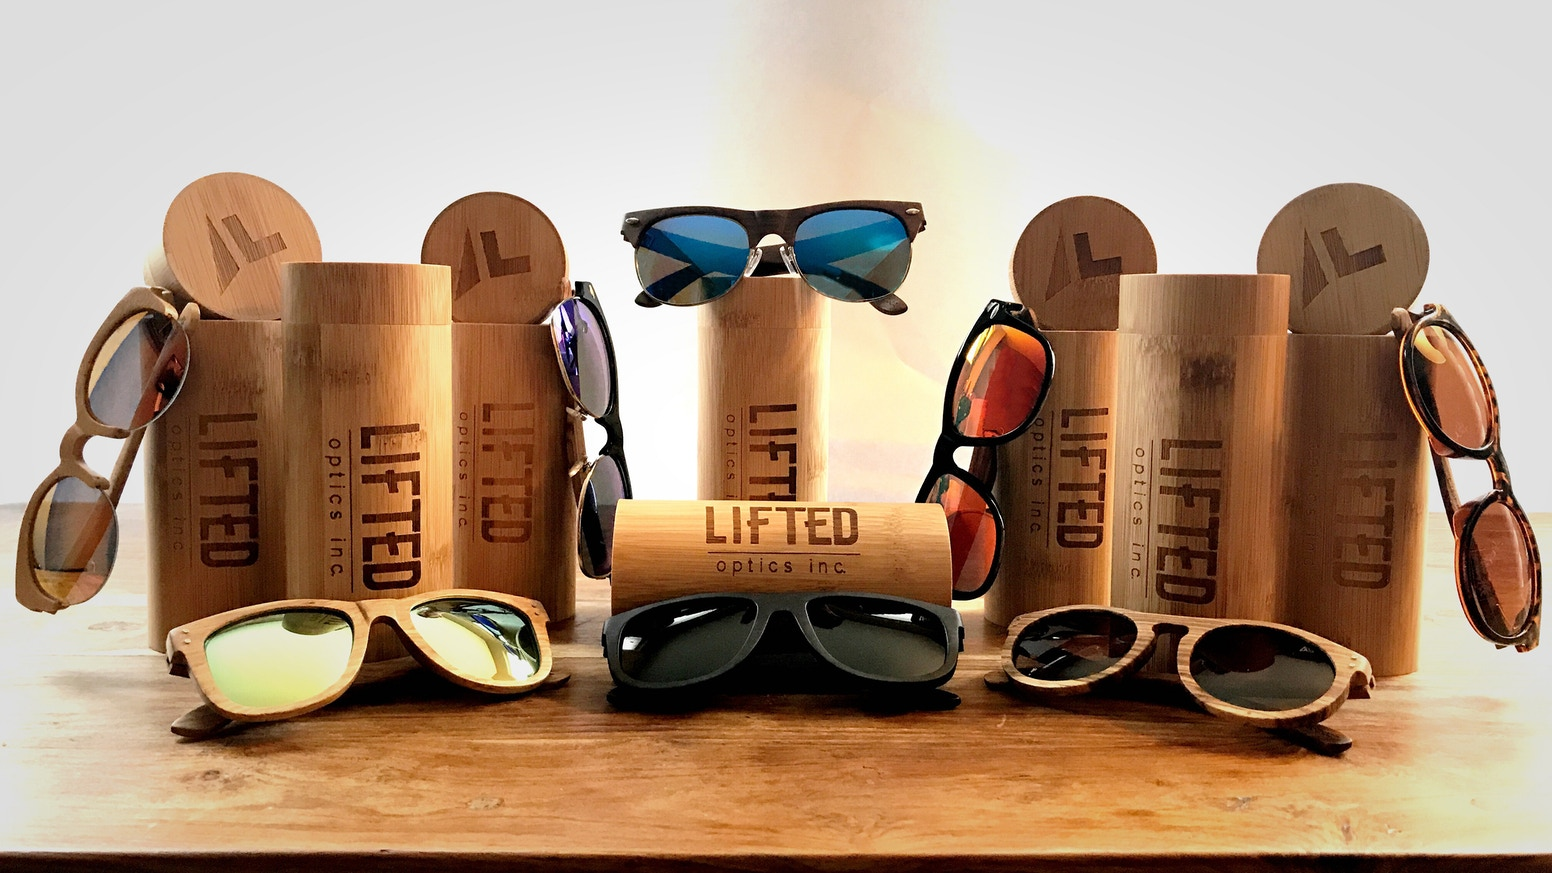 Lifted is bringing you a pair of polarized wood framed sunglasses, and planting a tree for every single pair sold! Live. Life. Lifted.